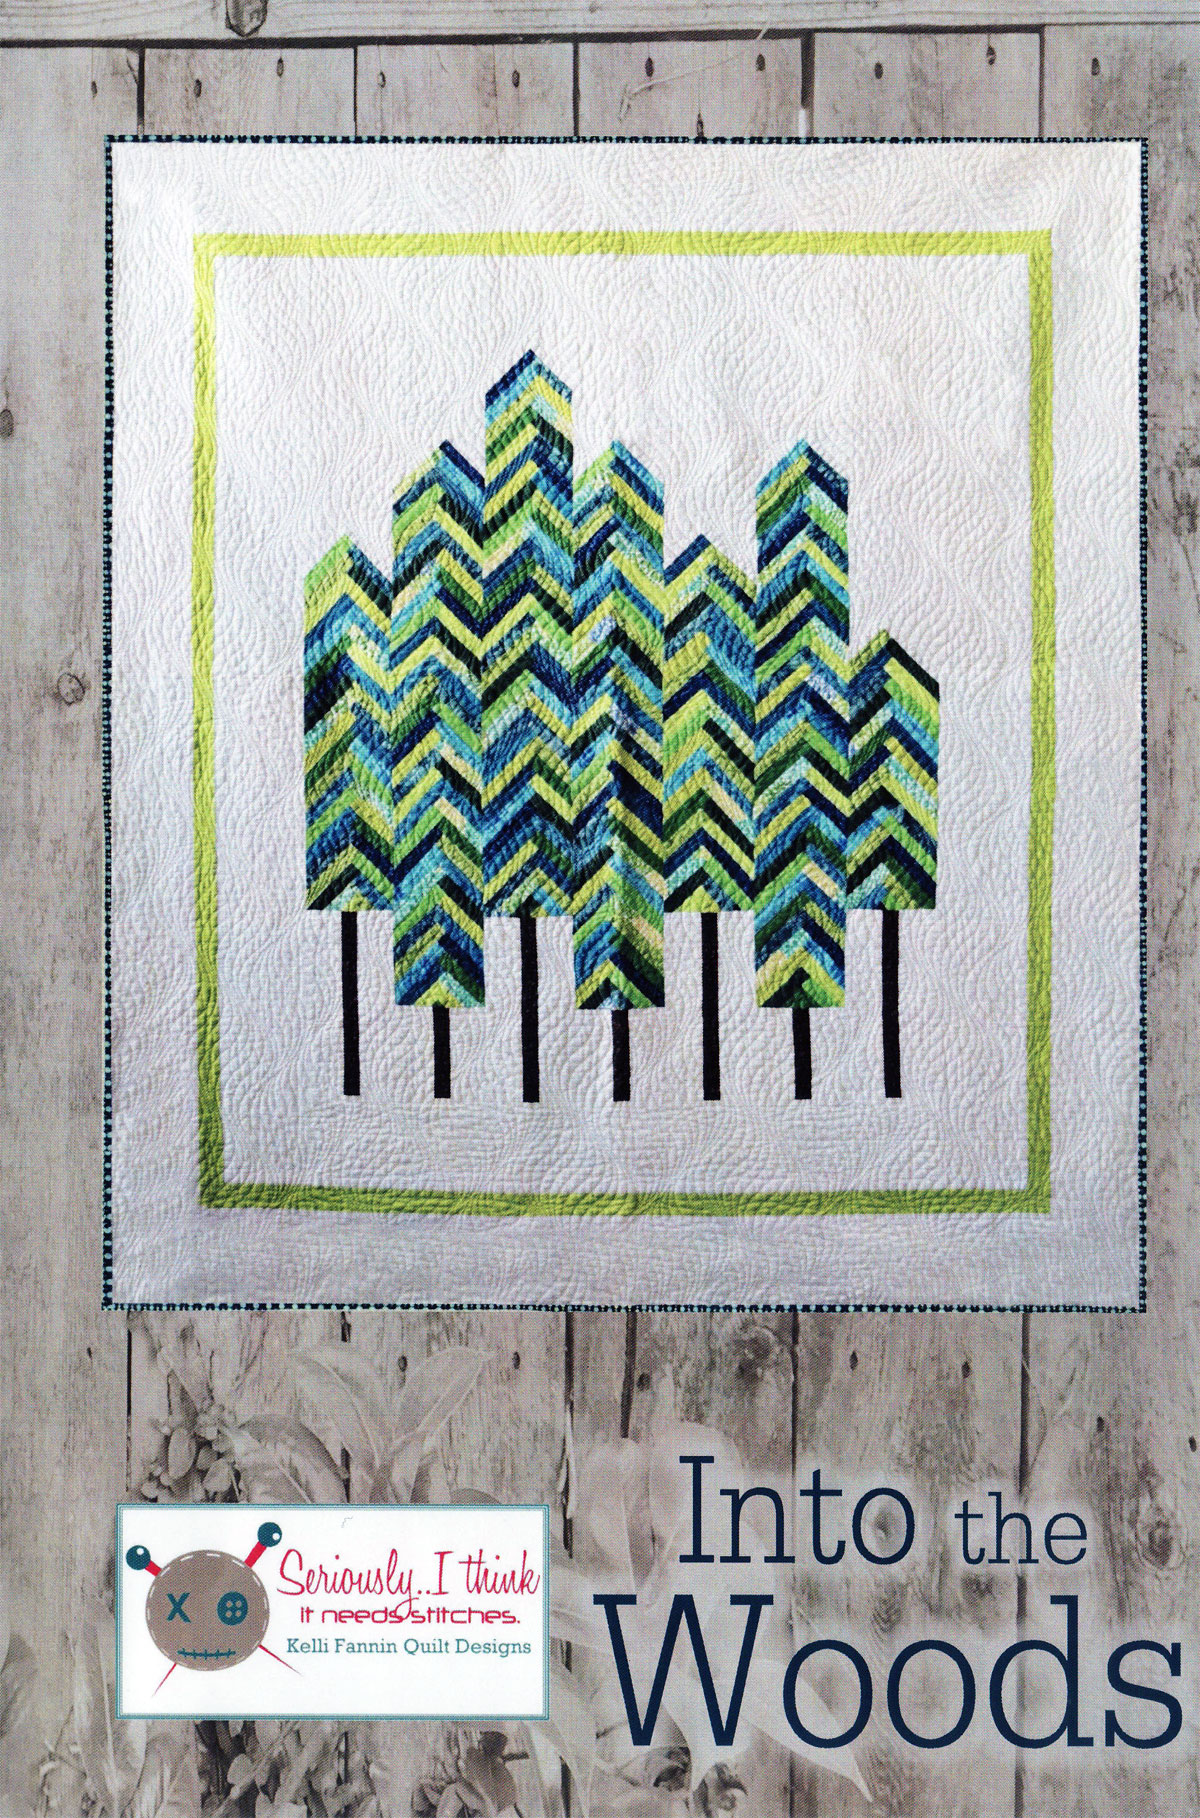 into-the-woods-quilt-sewing-pattern-Kelli-Fannin-Quilt-Designs-front